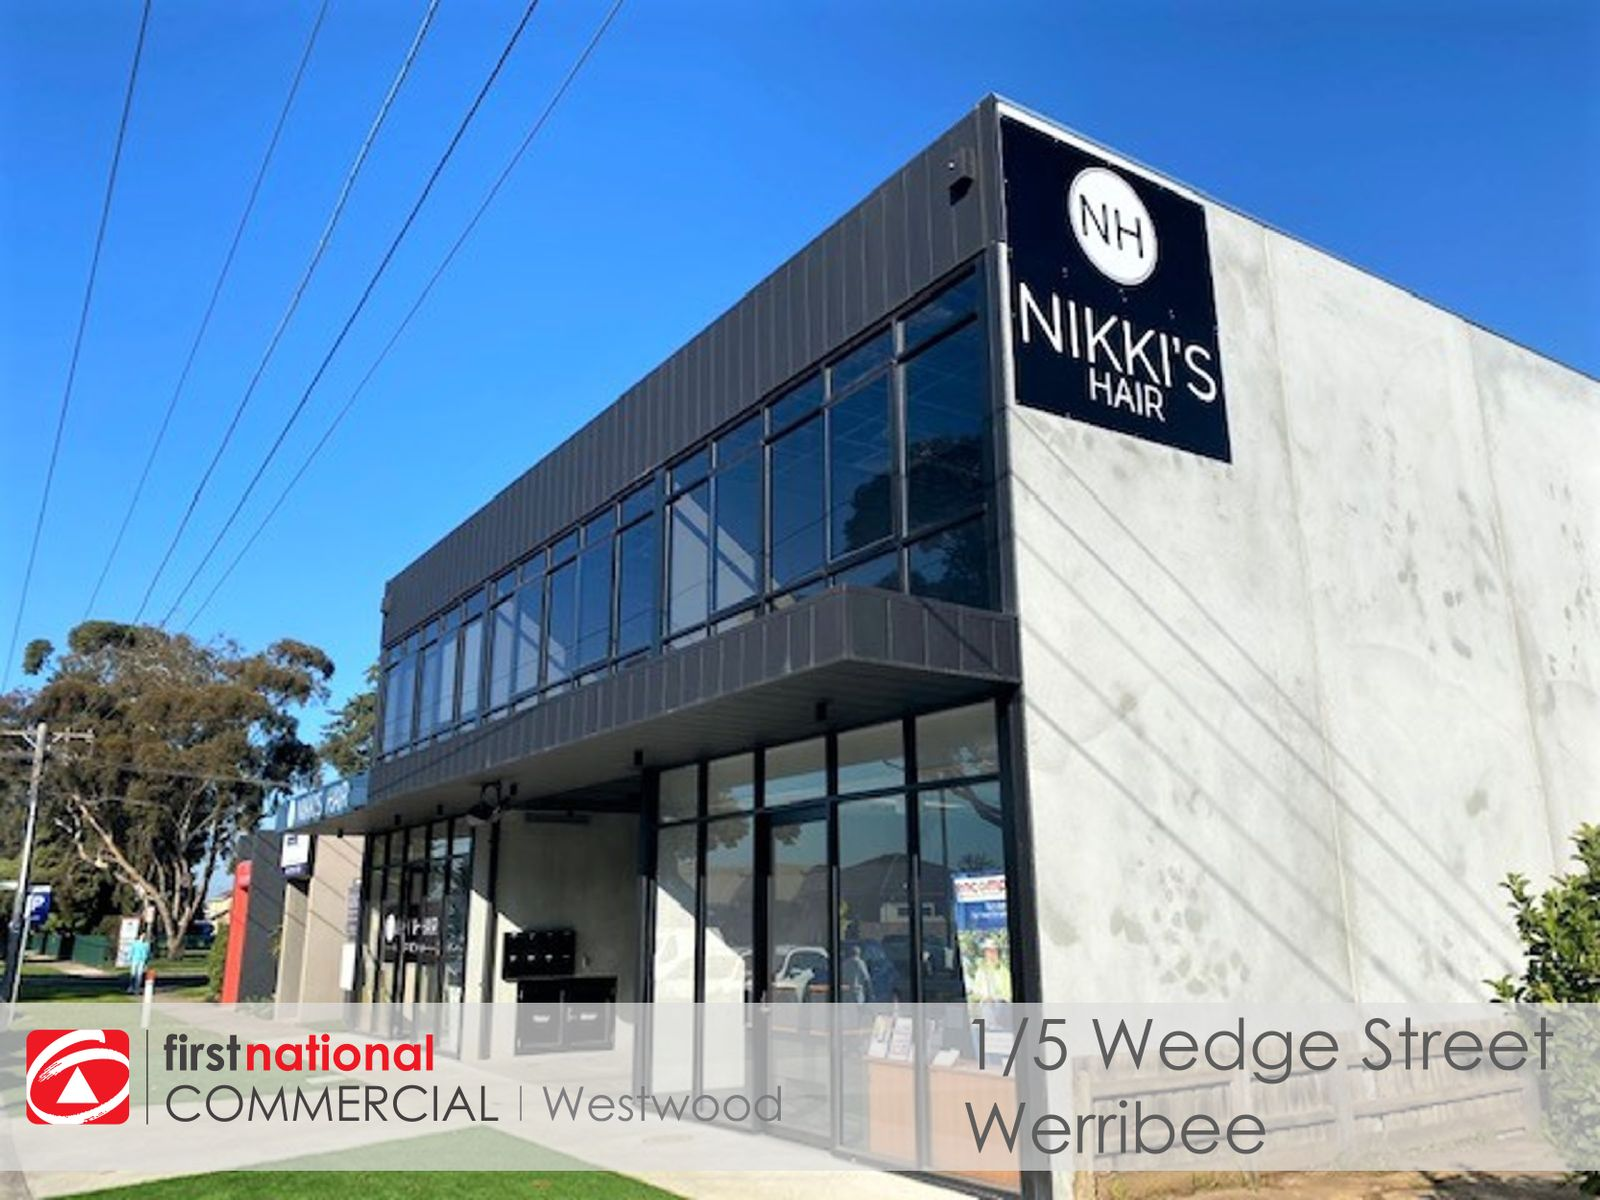 1/5 Wedge Street South, Werribee, VIC 3030